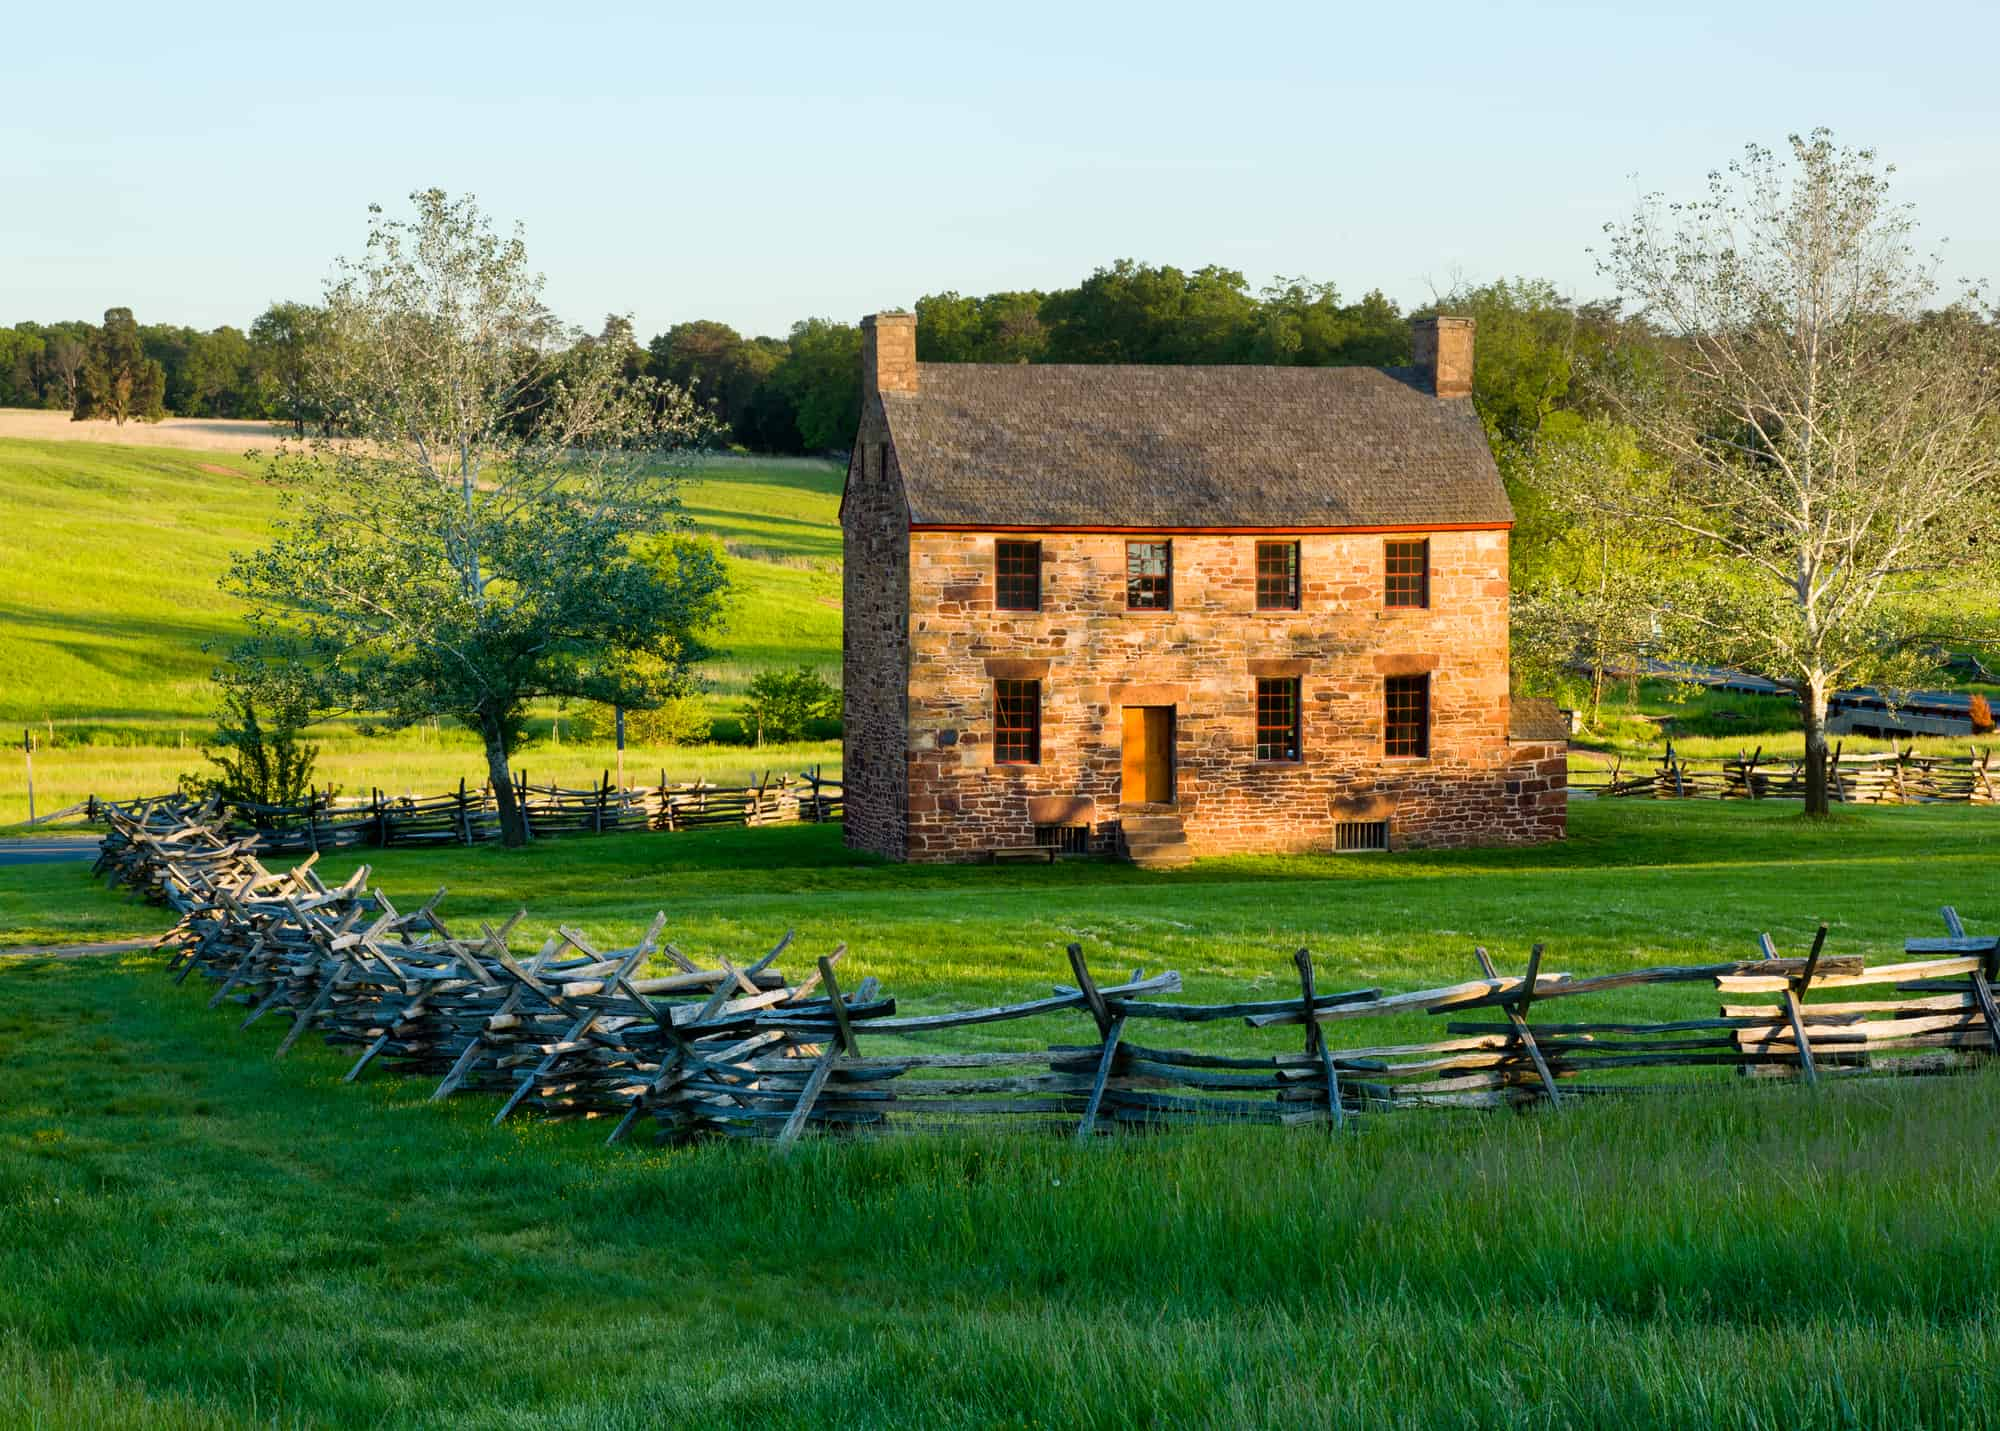 Manassas National Battlefield